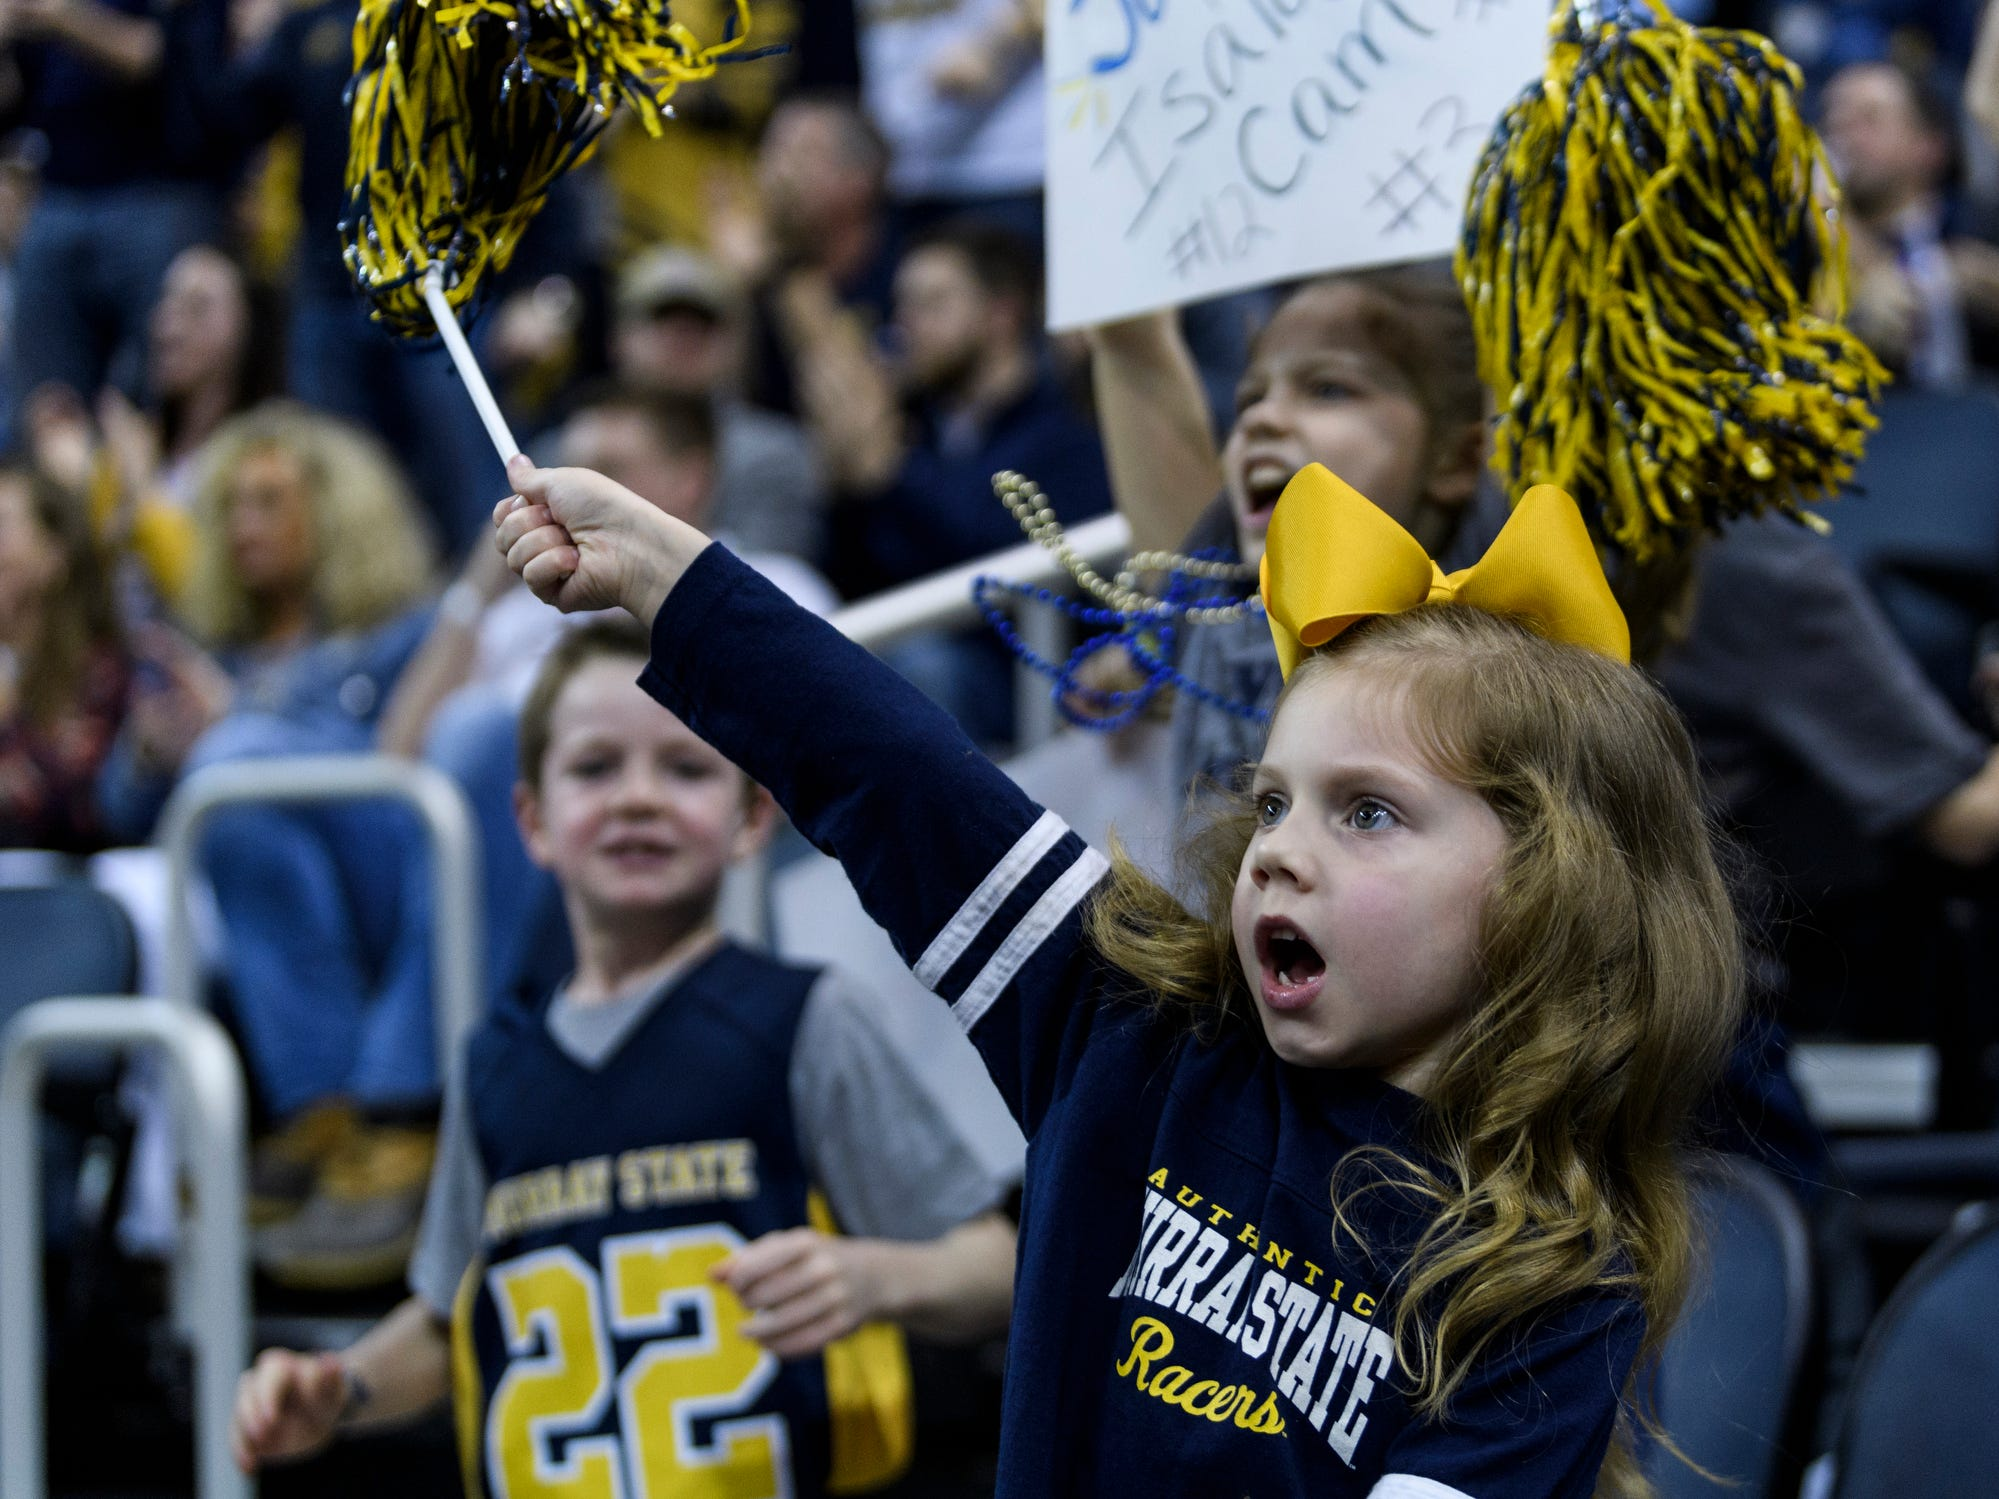 June Johnson, 5, of Murray, Ky., cheers for the Murray State University Racers during the Ohio Valley Conference men's basketball championship against the Belmont University Bruins at Ford Center in Evansville, Ind., Saturday, March 9, 2019. The Racers earned the OVC men's championship title after defeating the Bruins, 77-65.